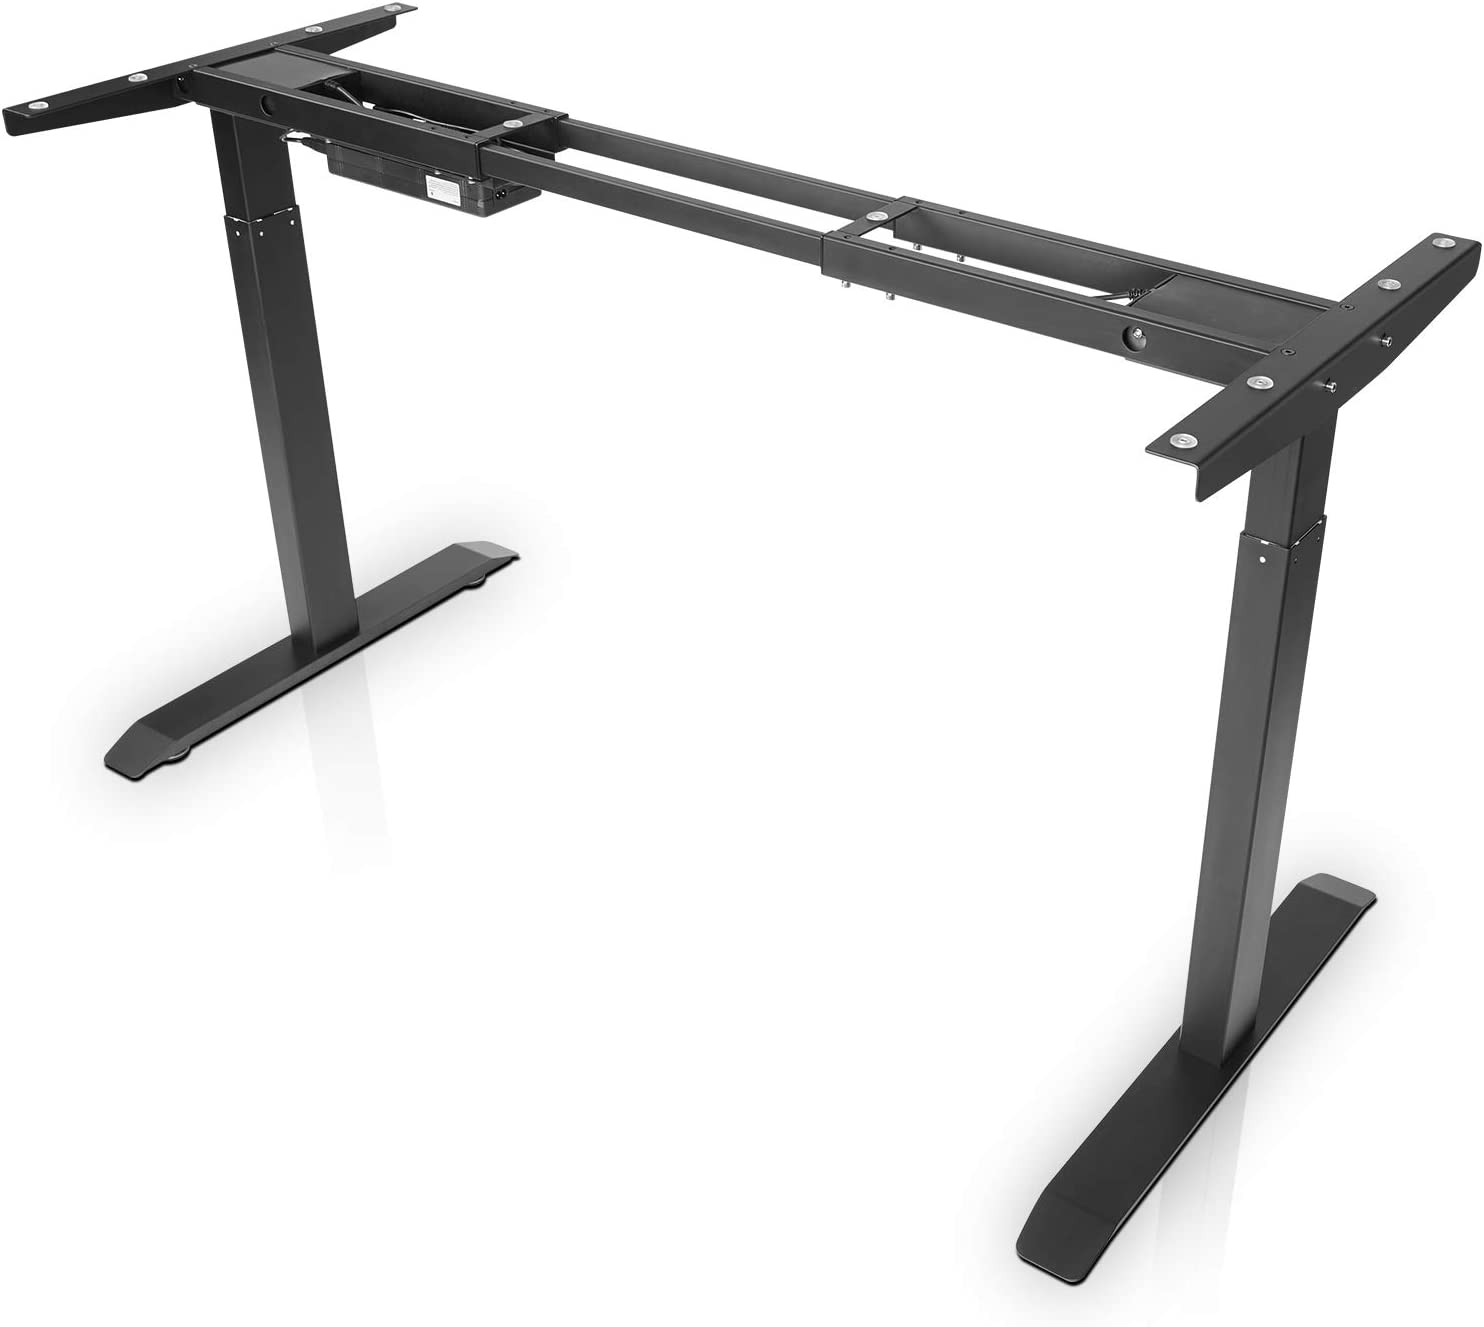 Electric Stand up Desk Frame - FEZIBO Dual Motor and Cable Management Rack Height Adjustable Sit Stand Standing Desk Base Workstation (Frame Only)